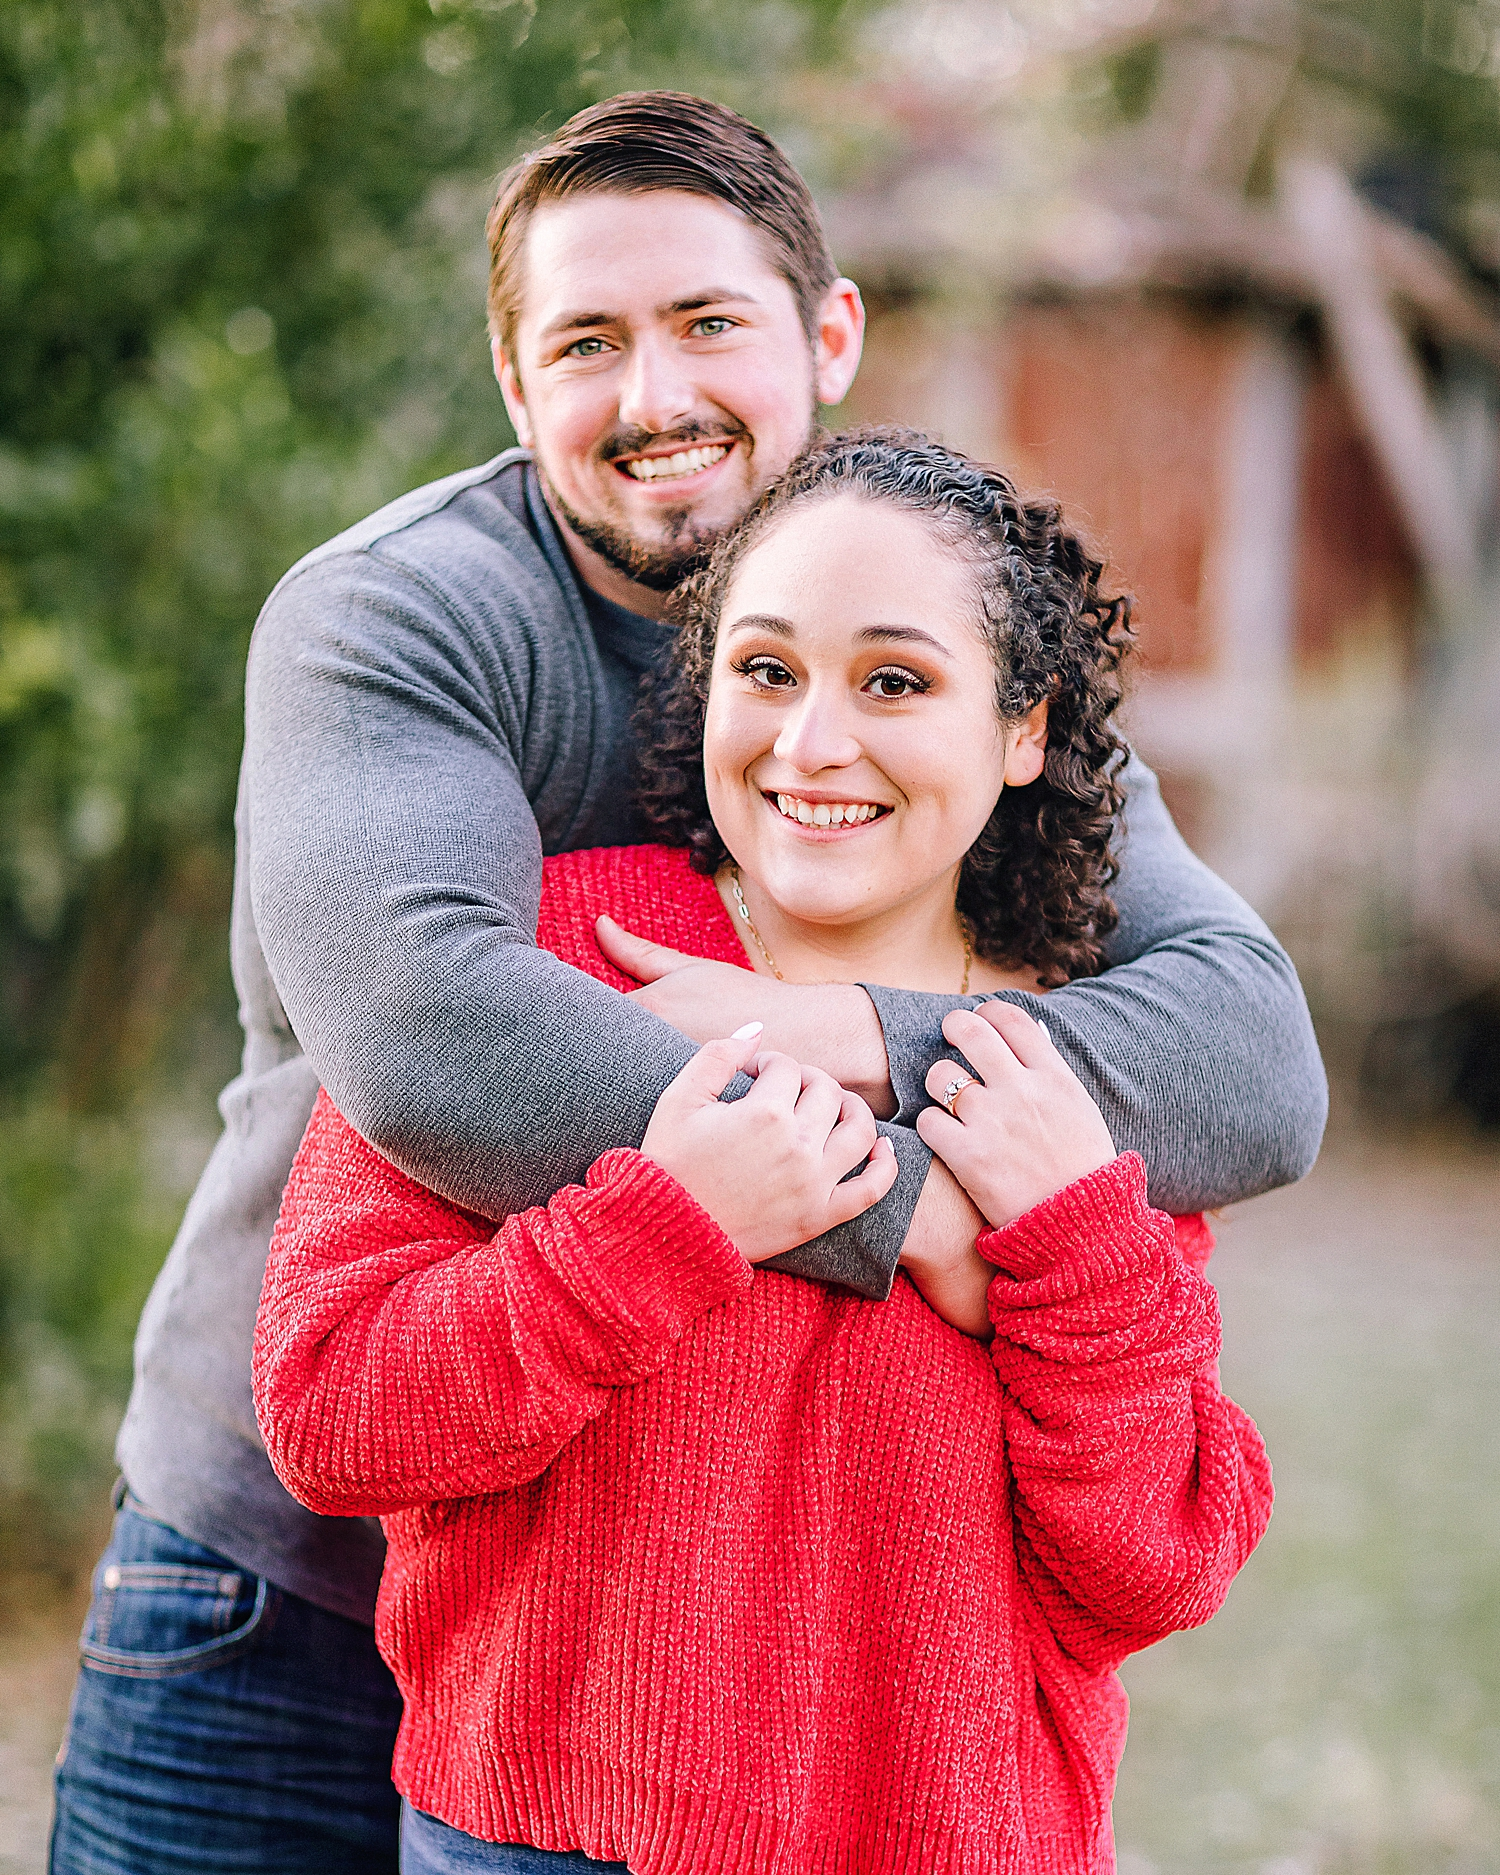 Engagement-photo-session-gruene-new-braunfels-texas-carly-barton-photography_0012.jpg